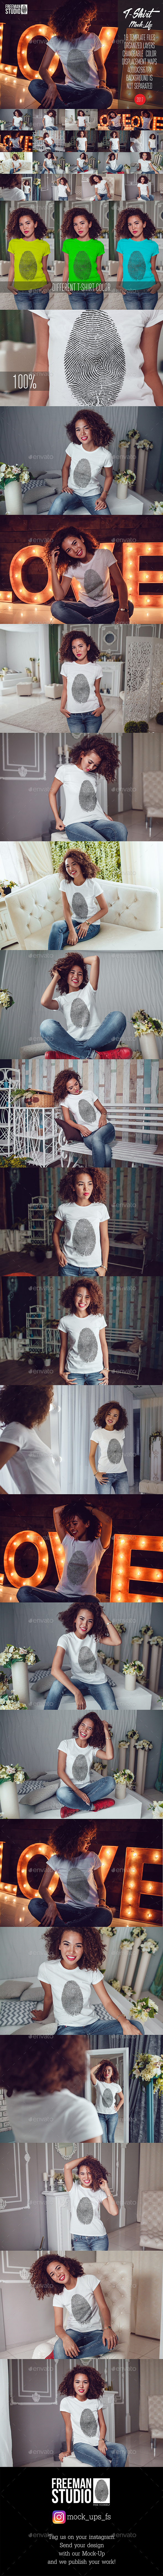 GraphicRiver T-Shirt Mock-Up Vol.15 2017 20664274